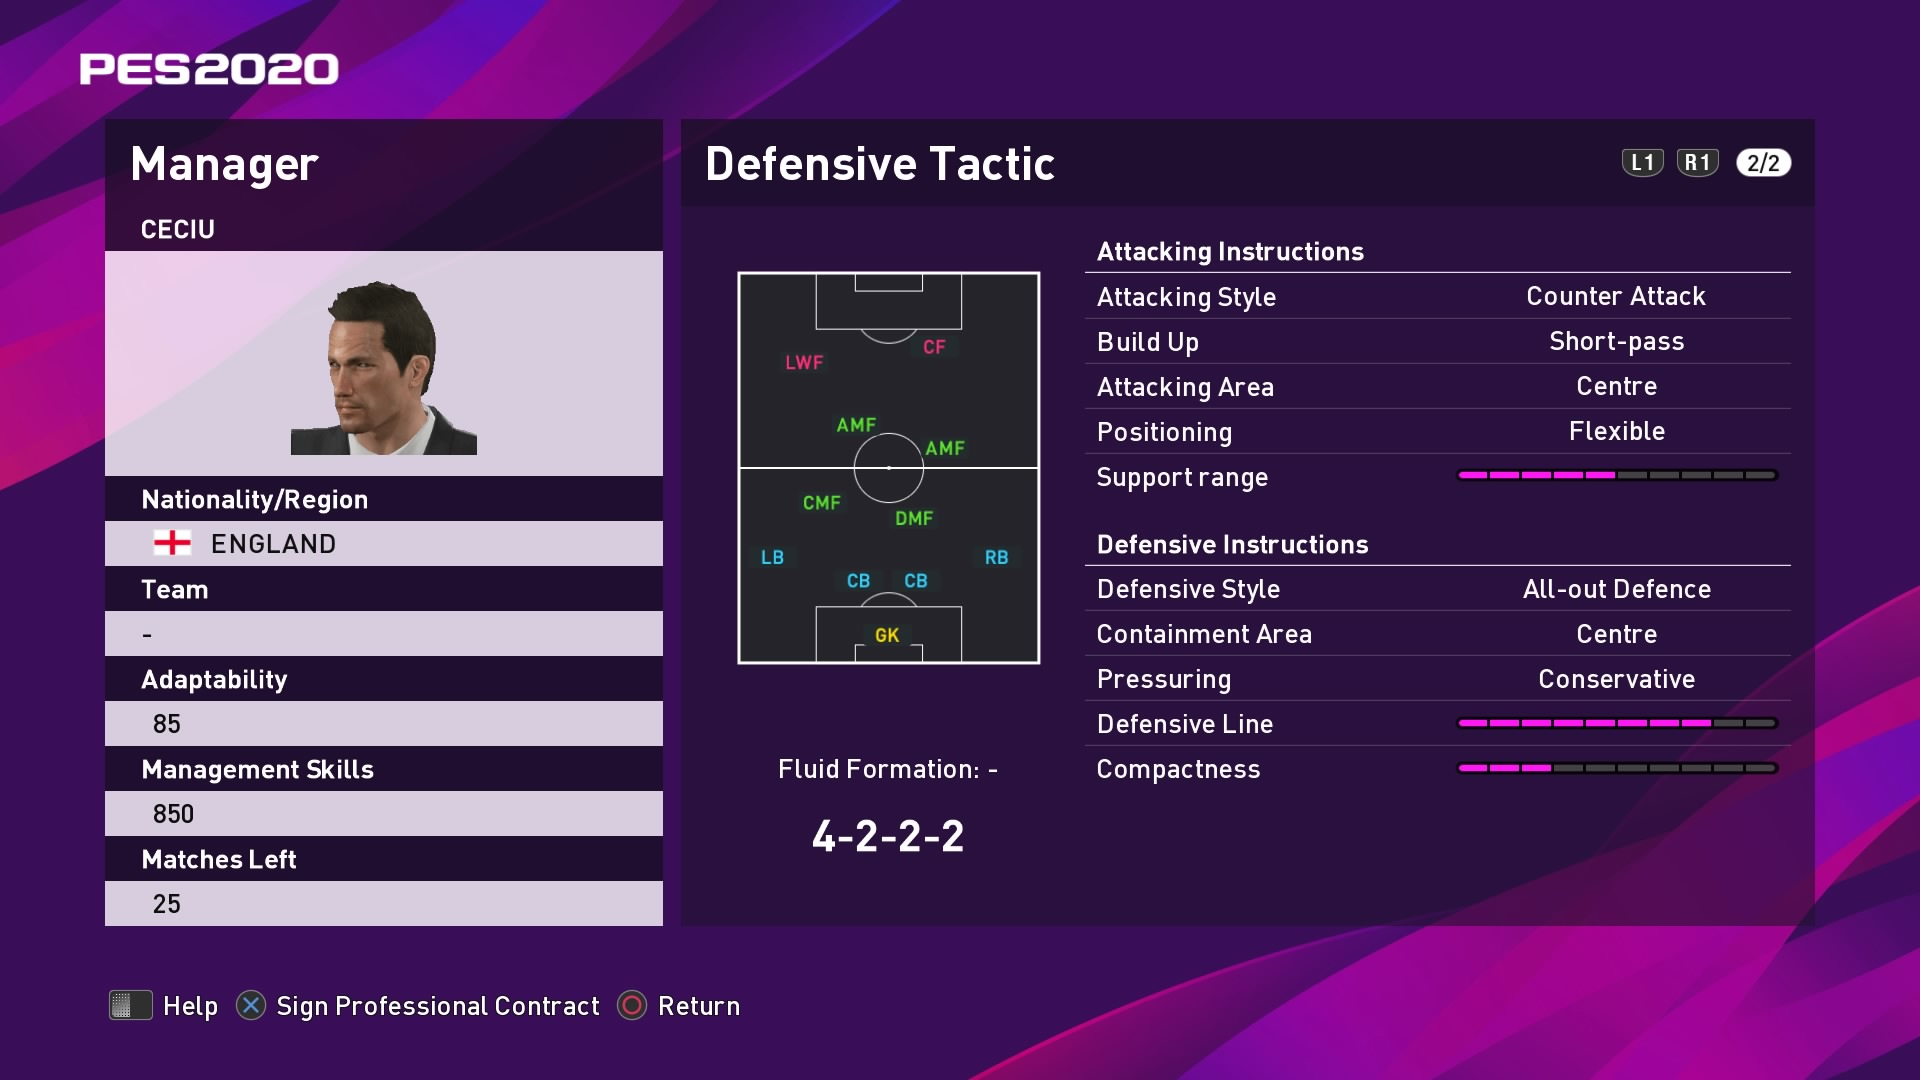 Ceciu Defensive Tactic in PES 2020 myClub